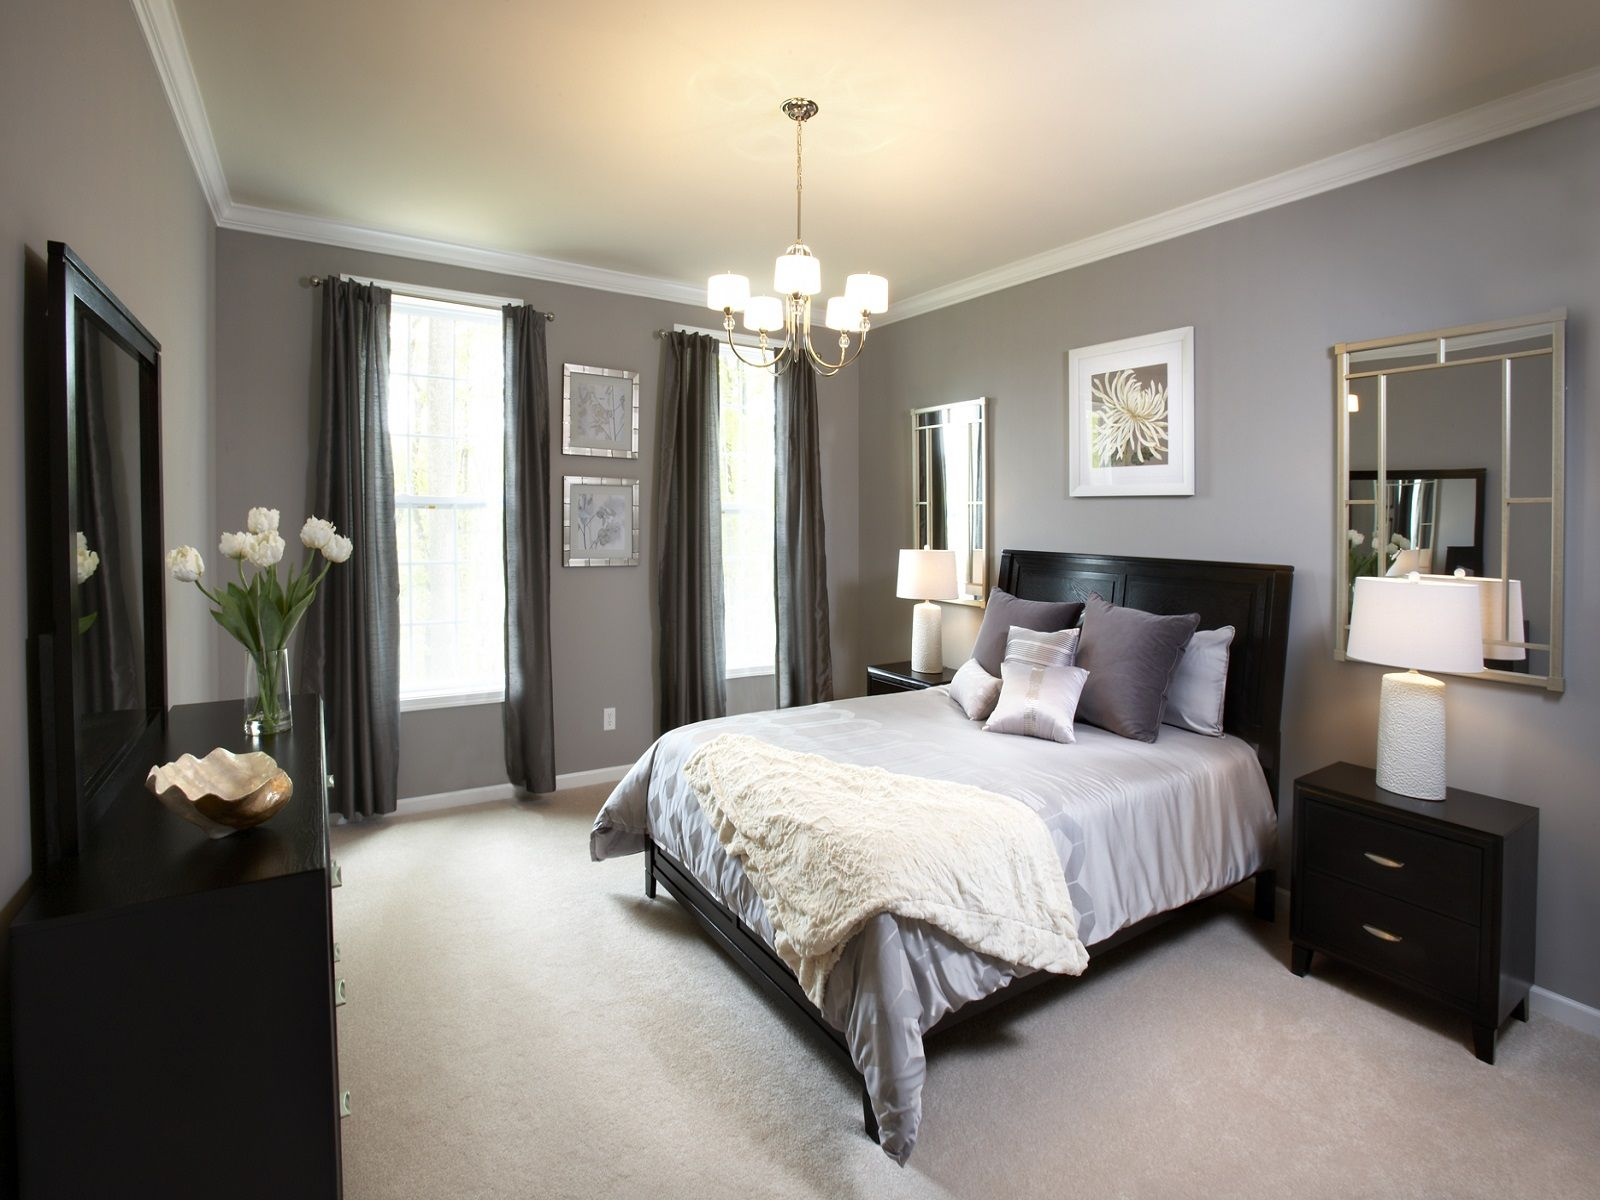 Awesome bedroom shade chandelier over white bedding ideas with black